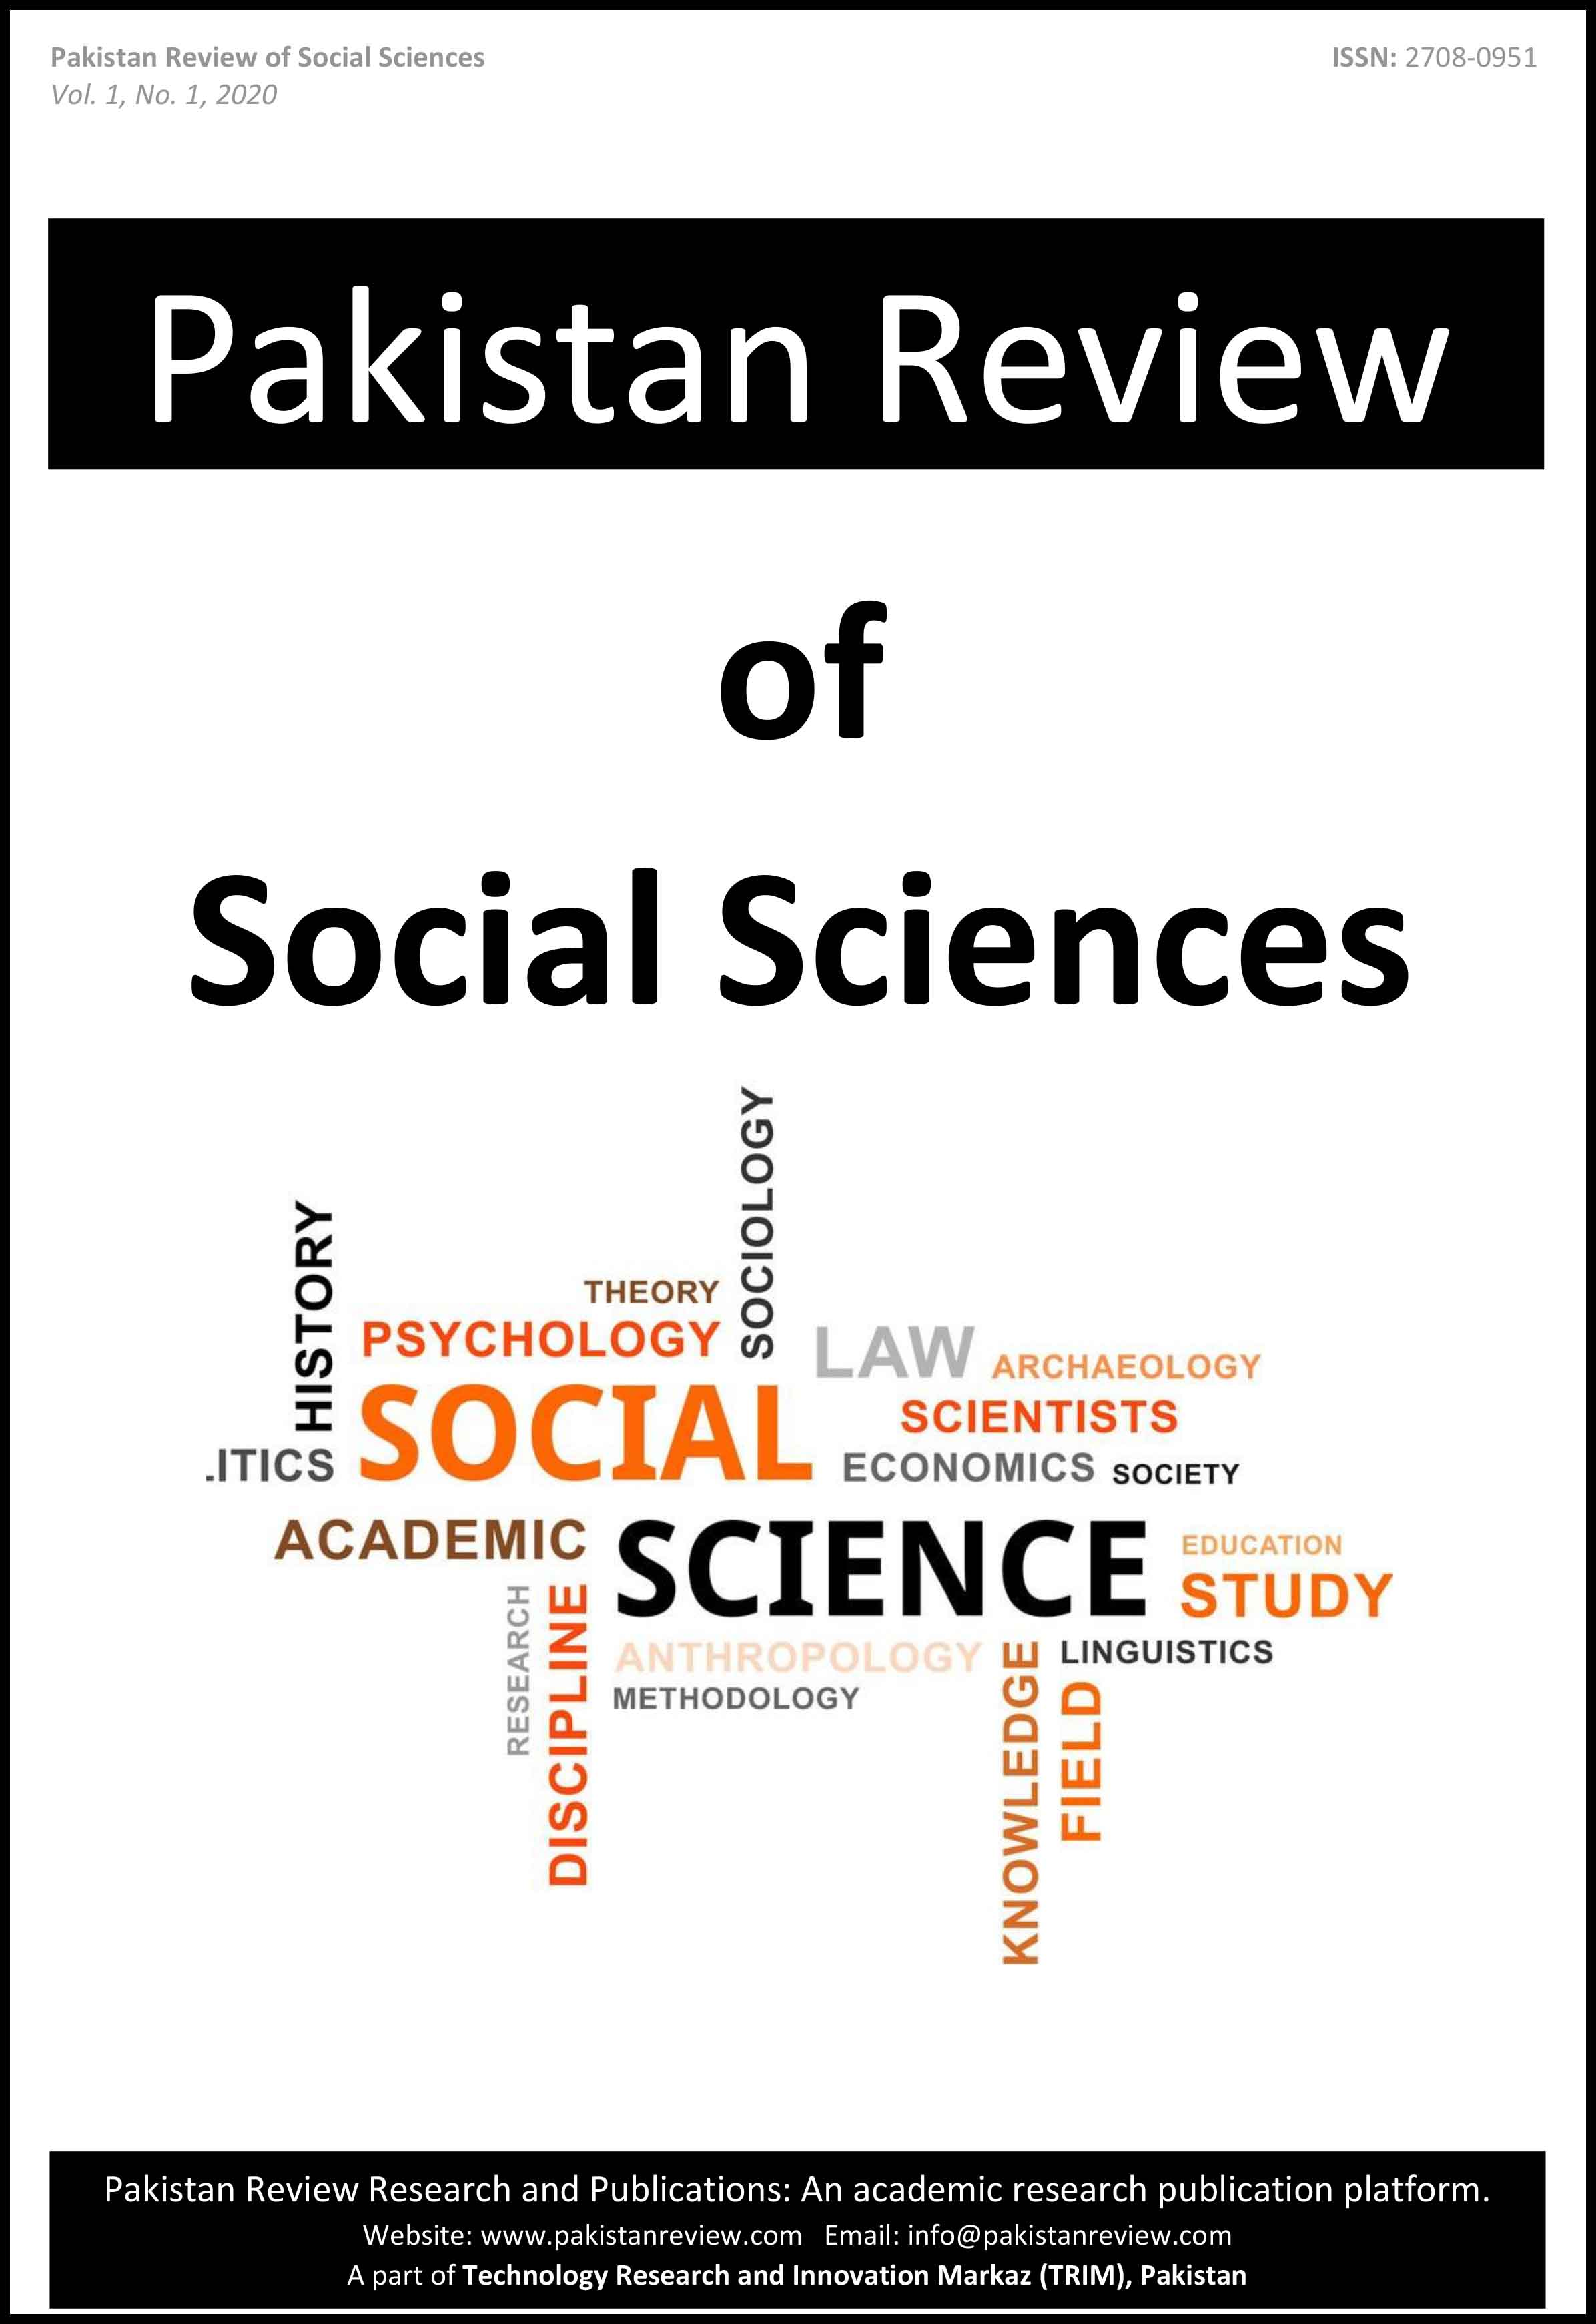 Pakistan Review of Social Sciences (PRSS)